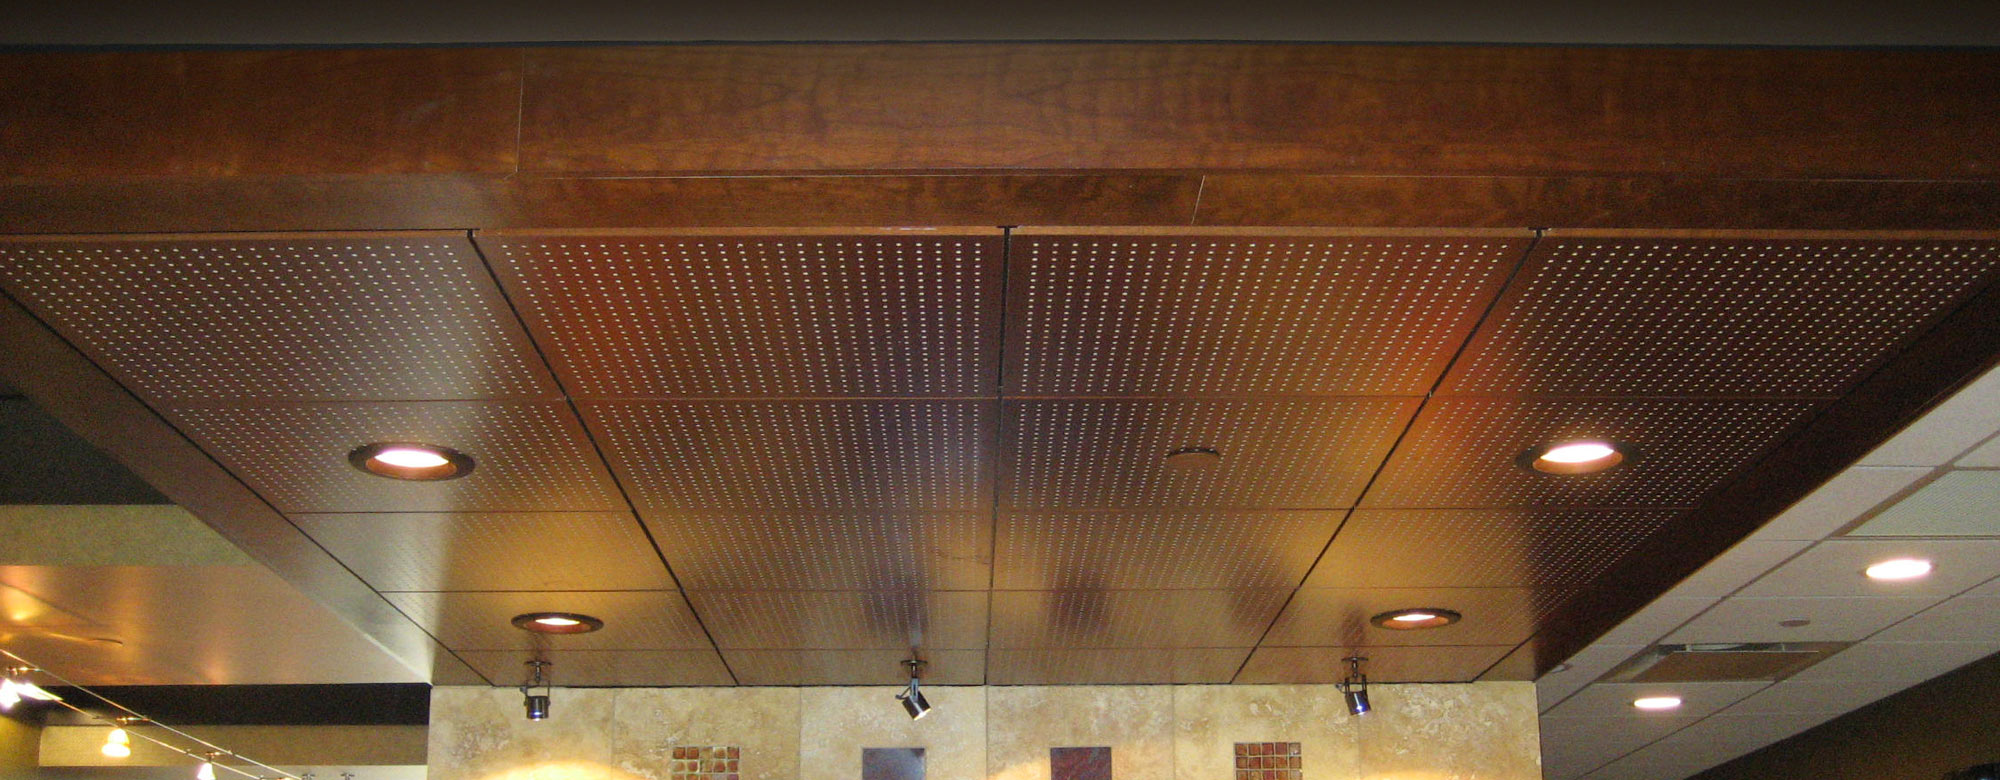 Wood style accoustical ceiling system in a bank